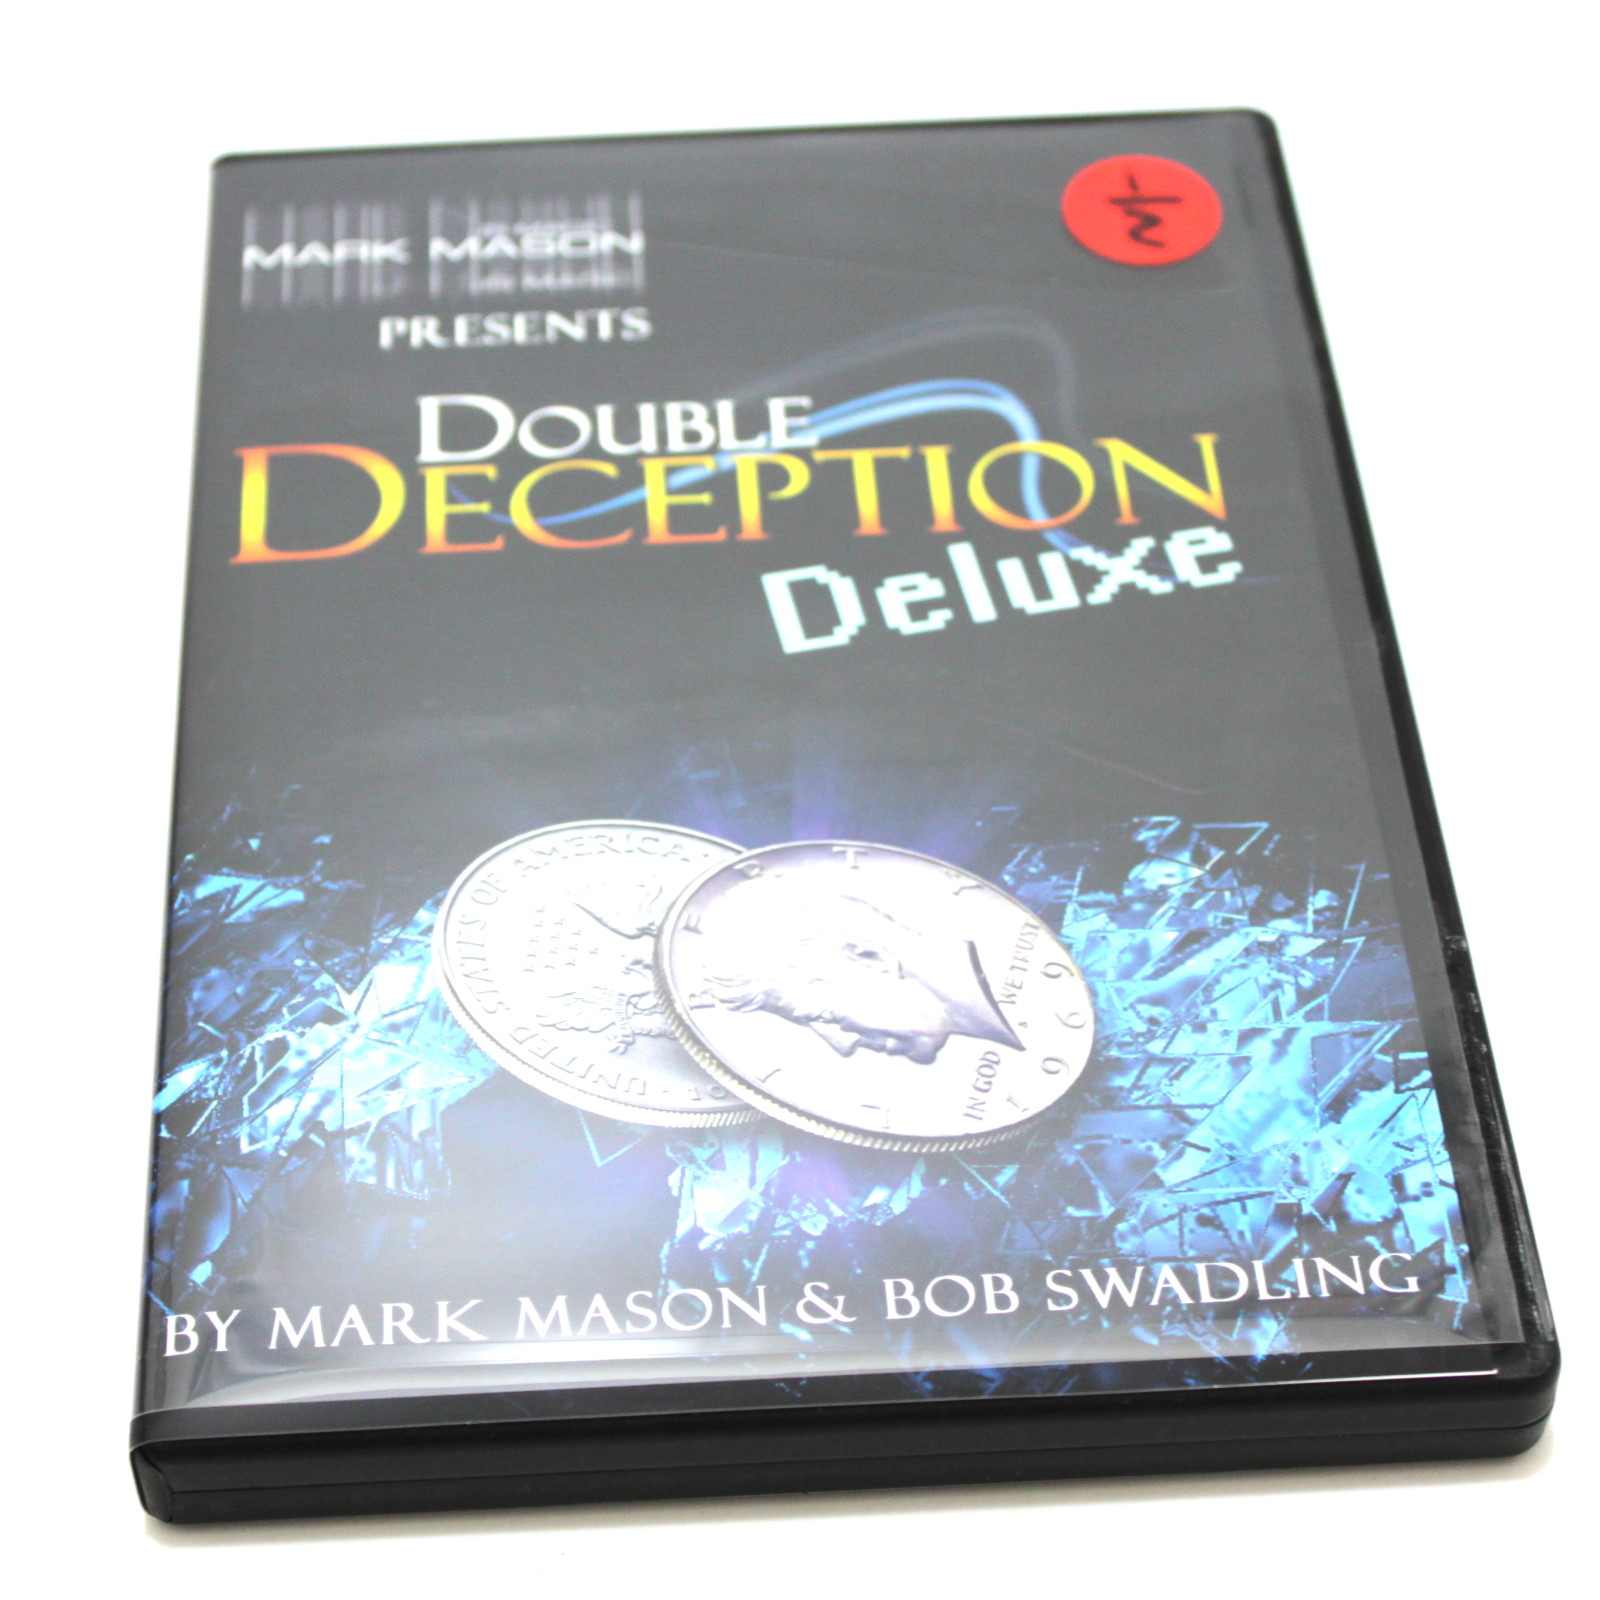 Double Deception Deluxe by Bob Swadling, Mark Mason